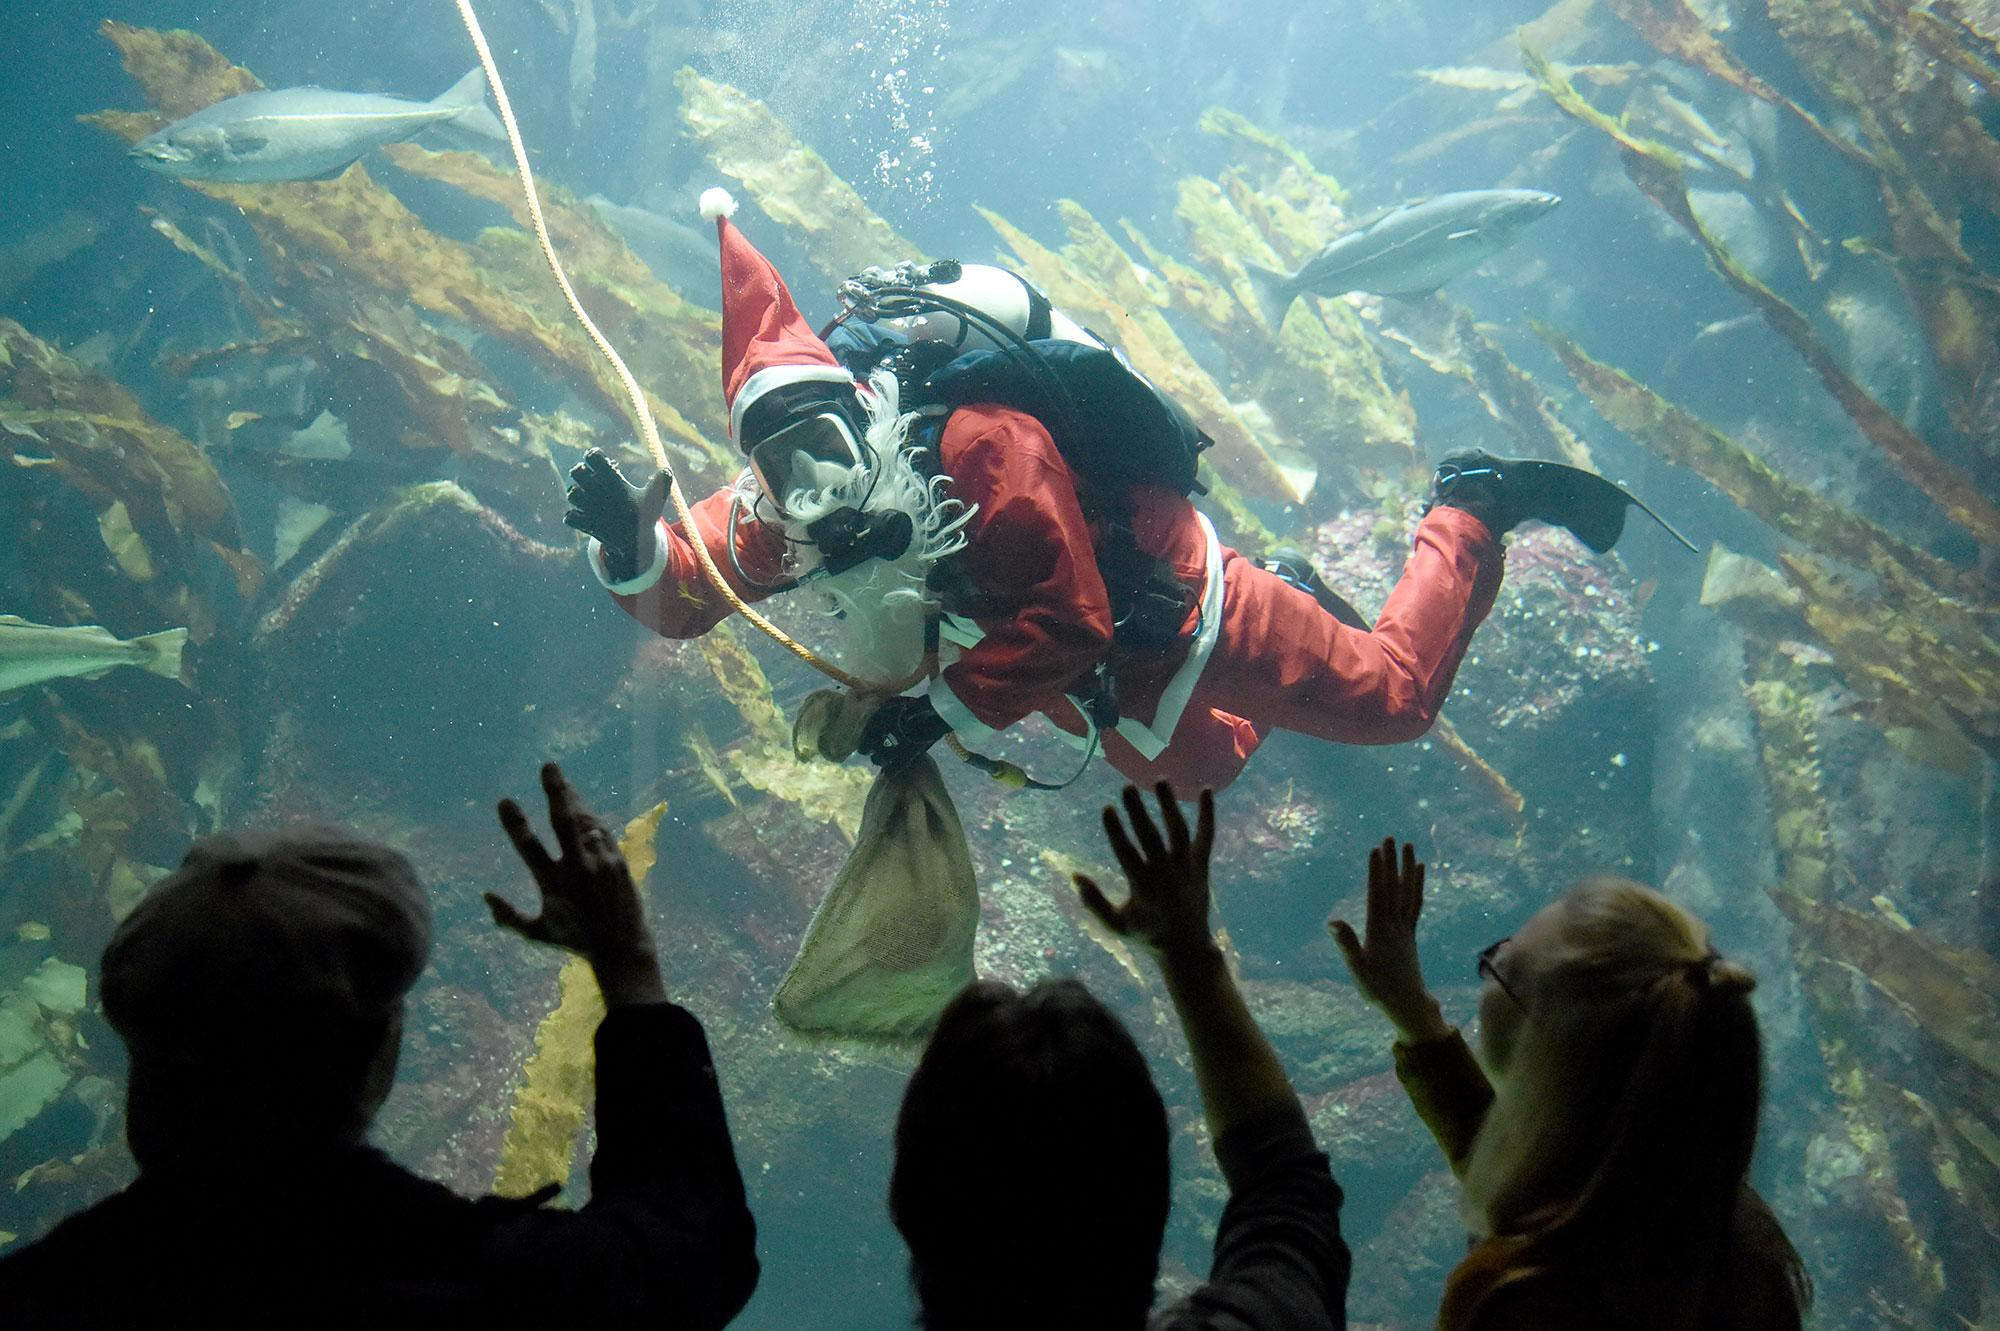 <p>A diver wearing a Saint Nicholas costume swims with the fishes in the big aquarium of the Multimar Wattforum in Toenning, Germany on Dec. 2, 2016. (Carsten Rehder/EPA) </p>